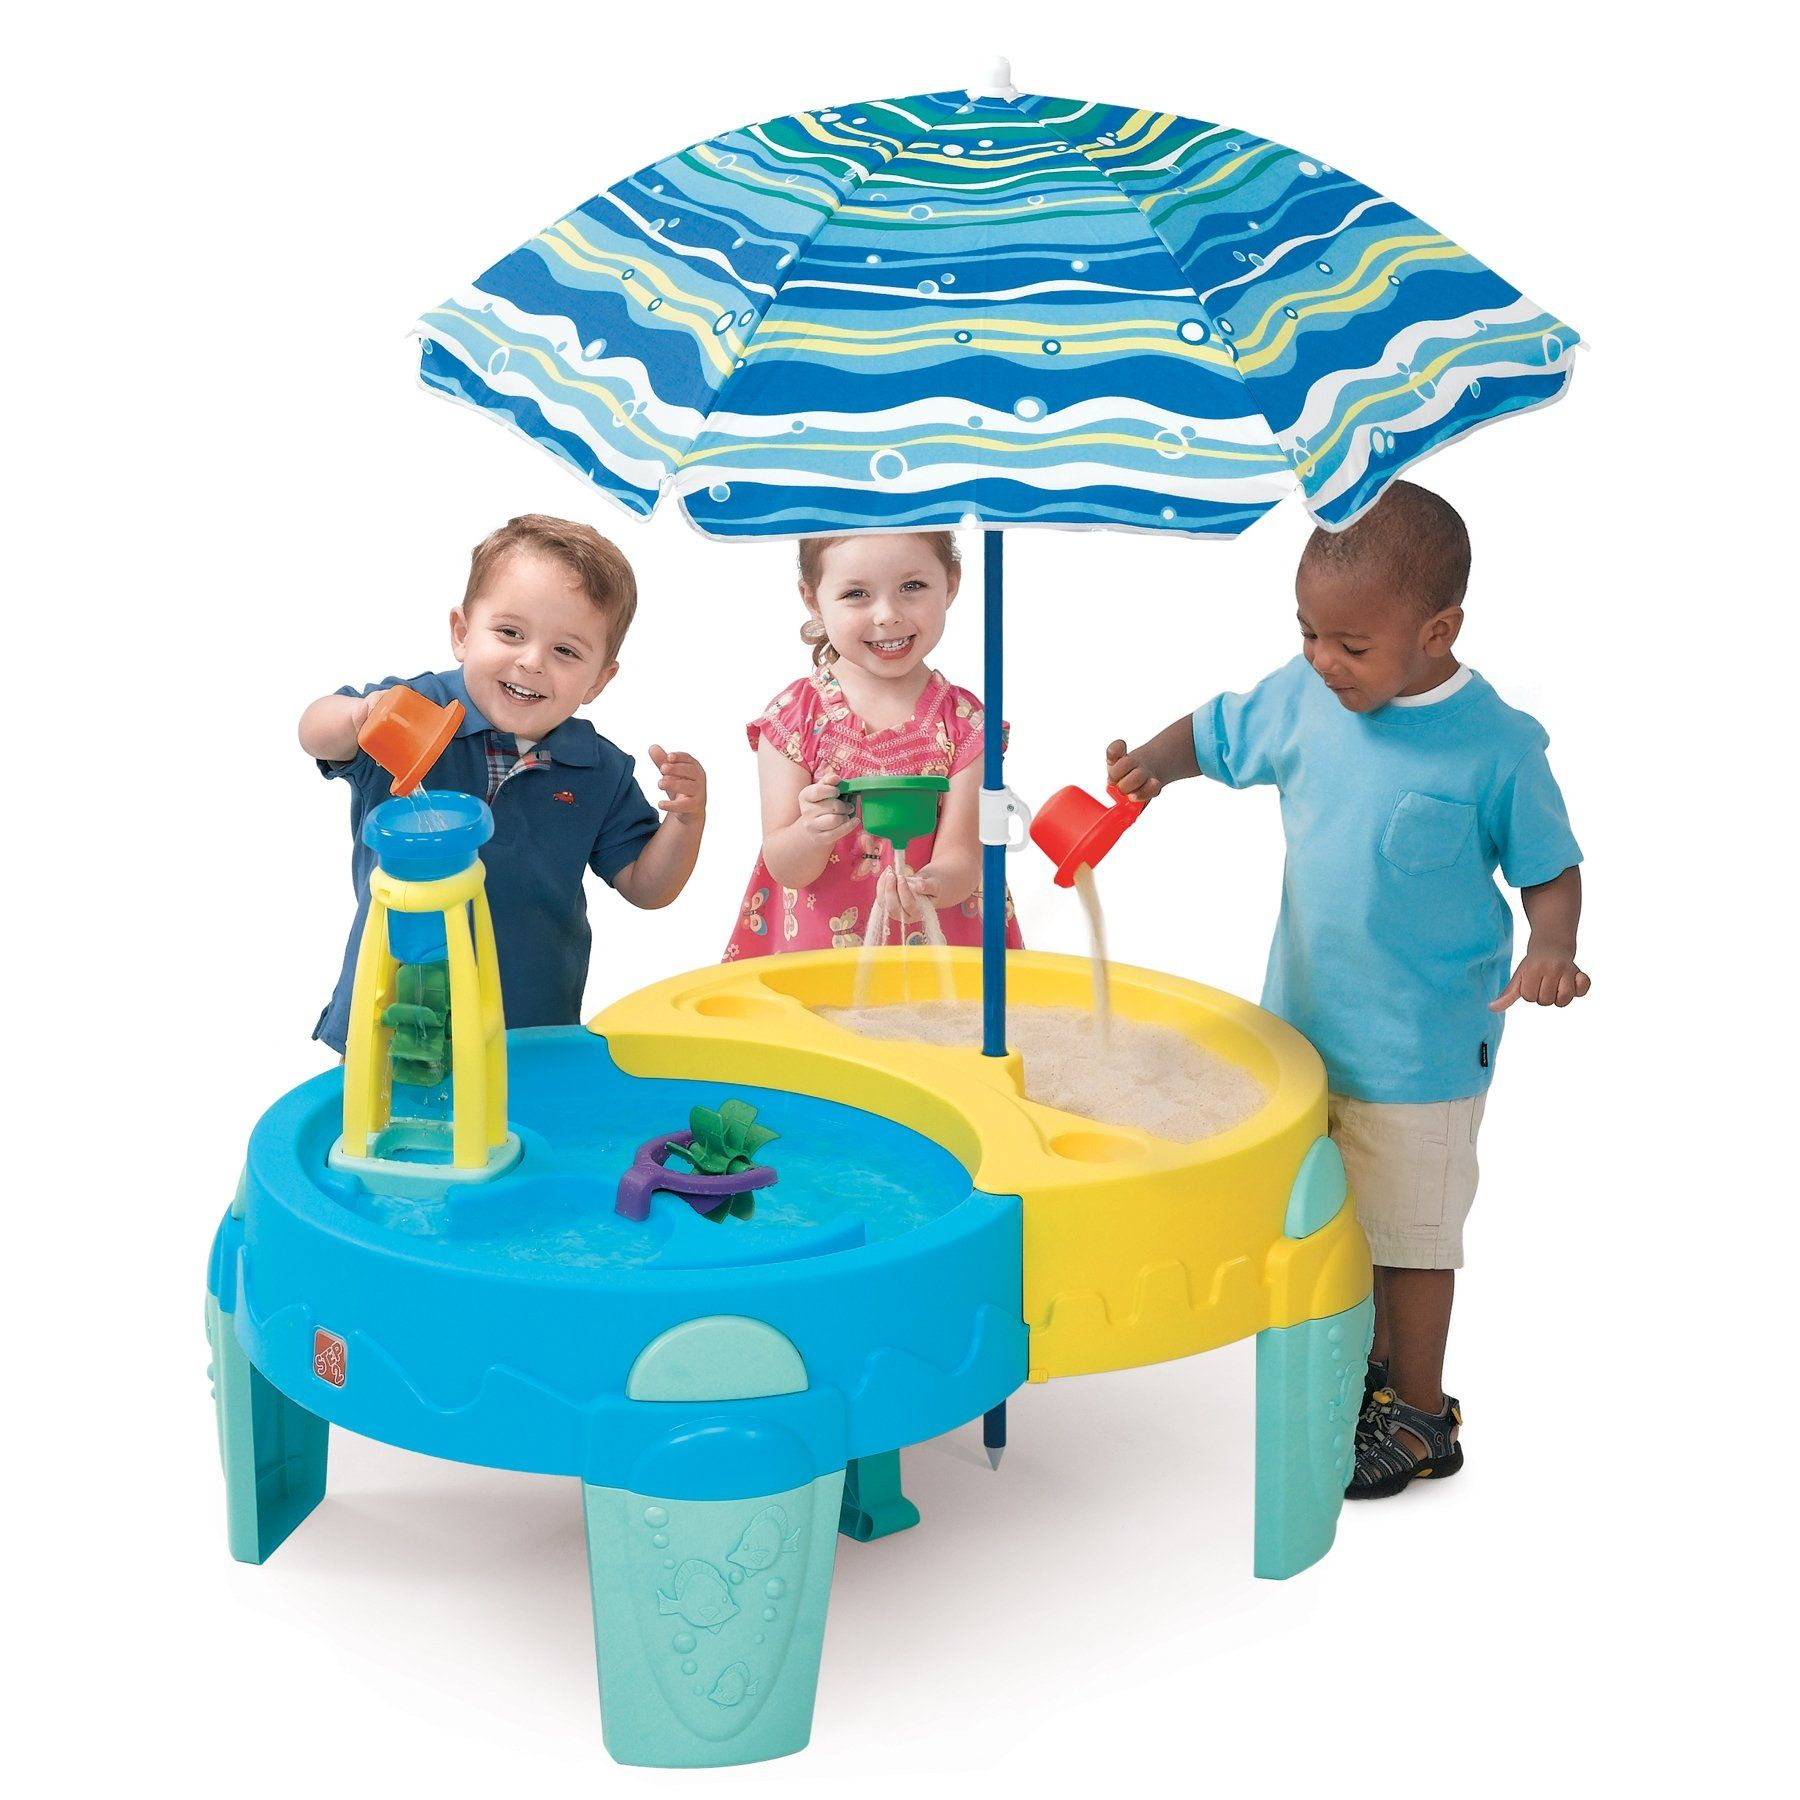 Amazon Com Step 2 Shady Oasis Sand And Water Play Table Toys Games